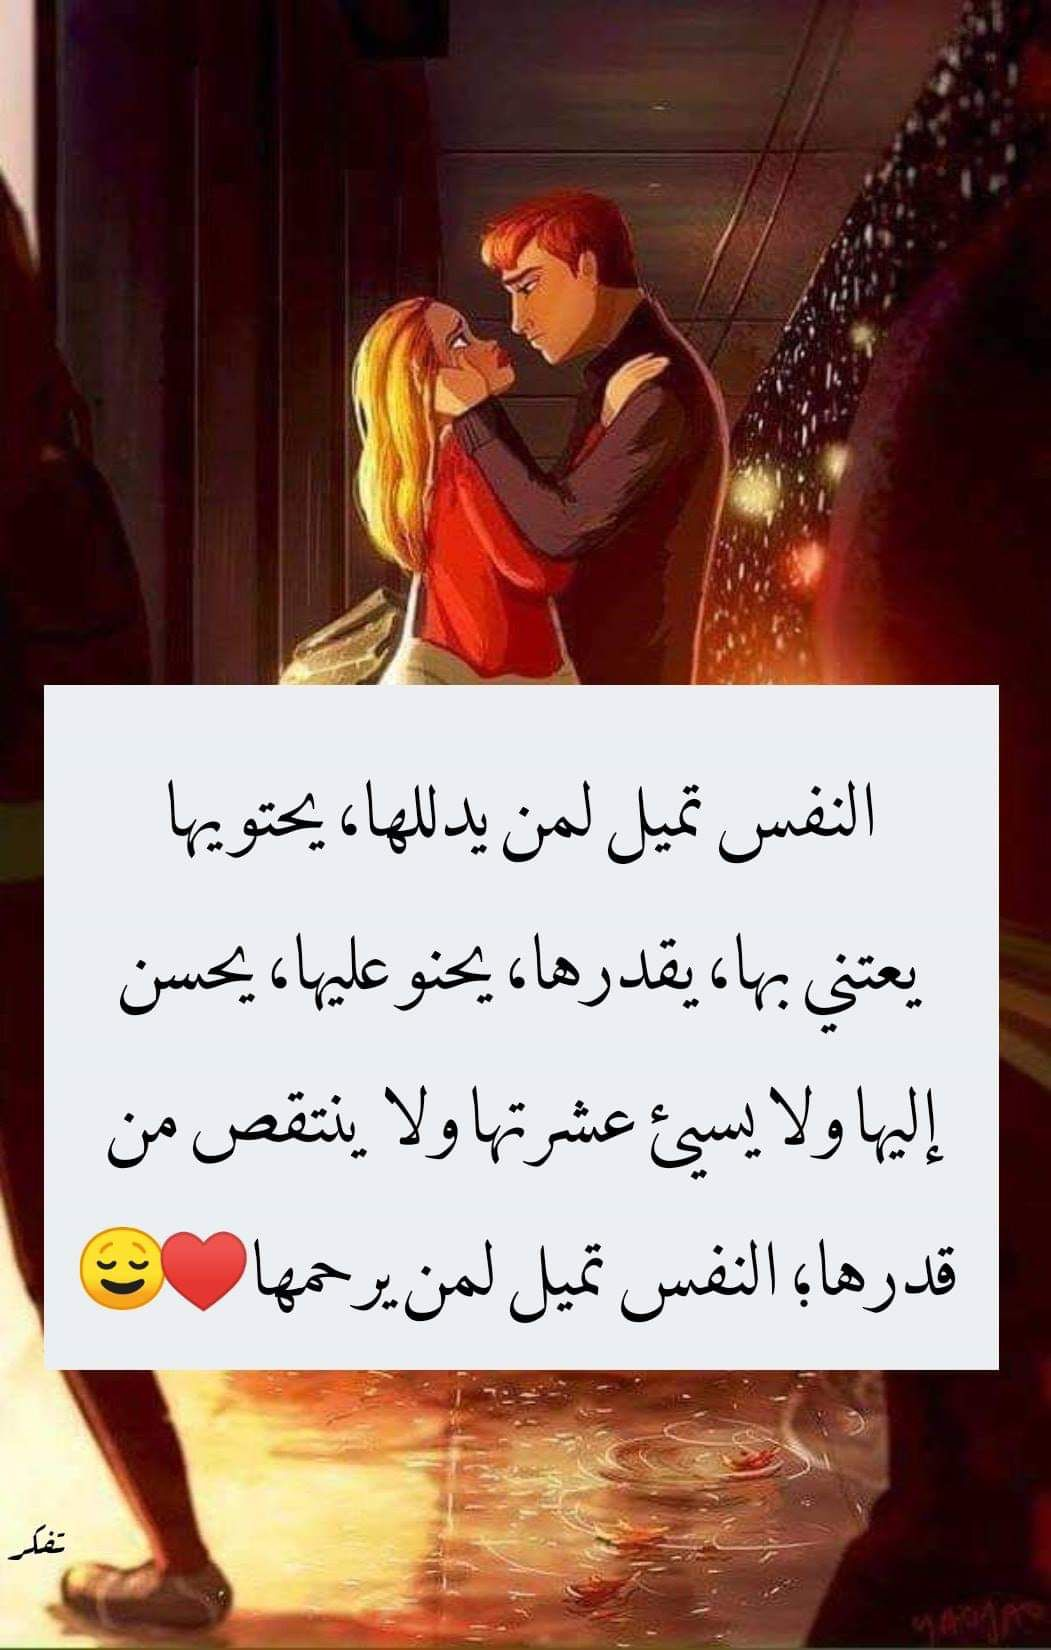 Pin By صورة و كلمة On مشاعر Love Words Arabic Words Love Quotes